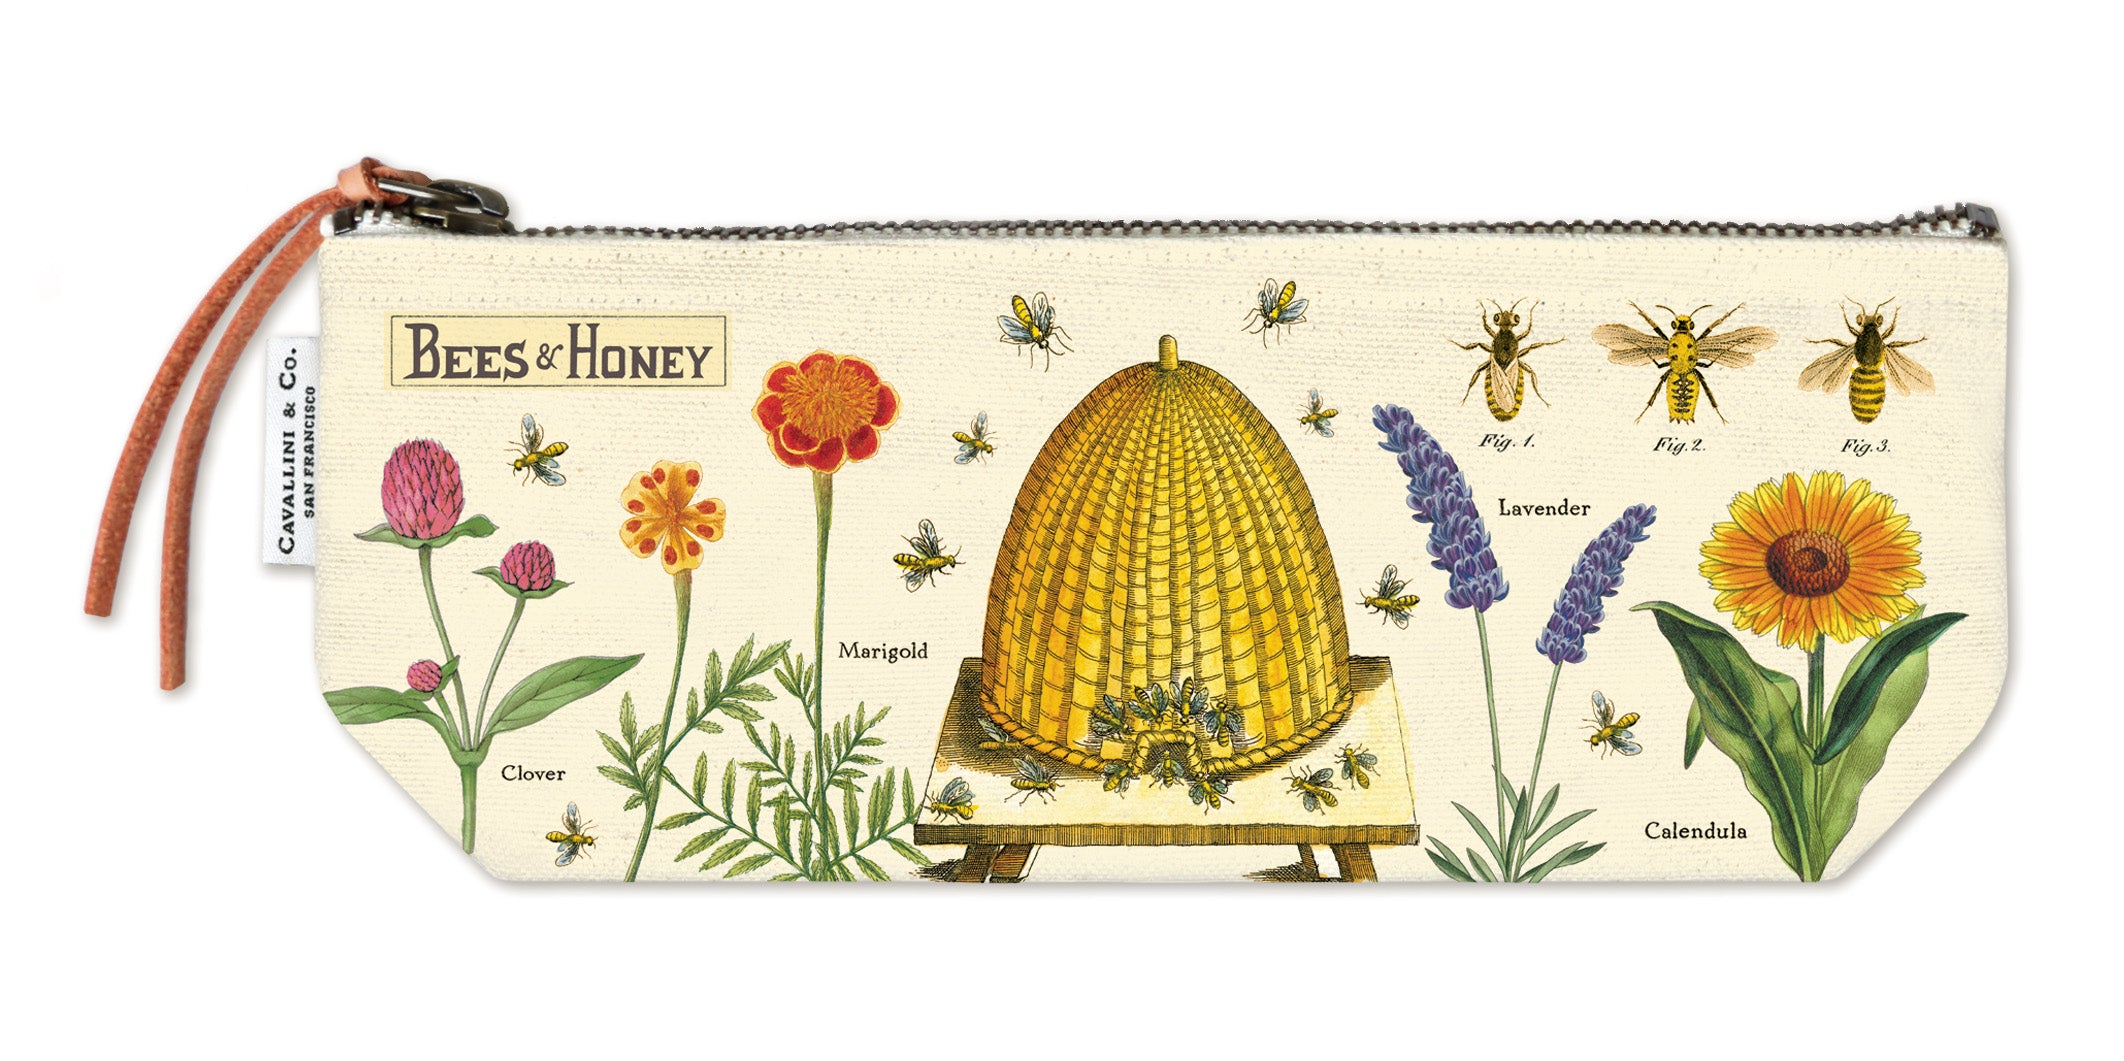 Bees & Honey Cavallini Mini Pouch